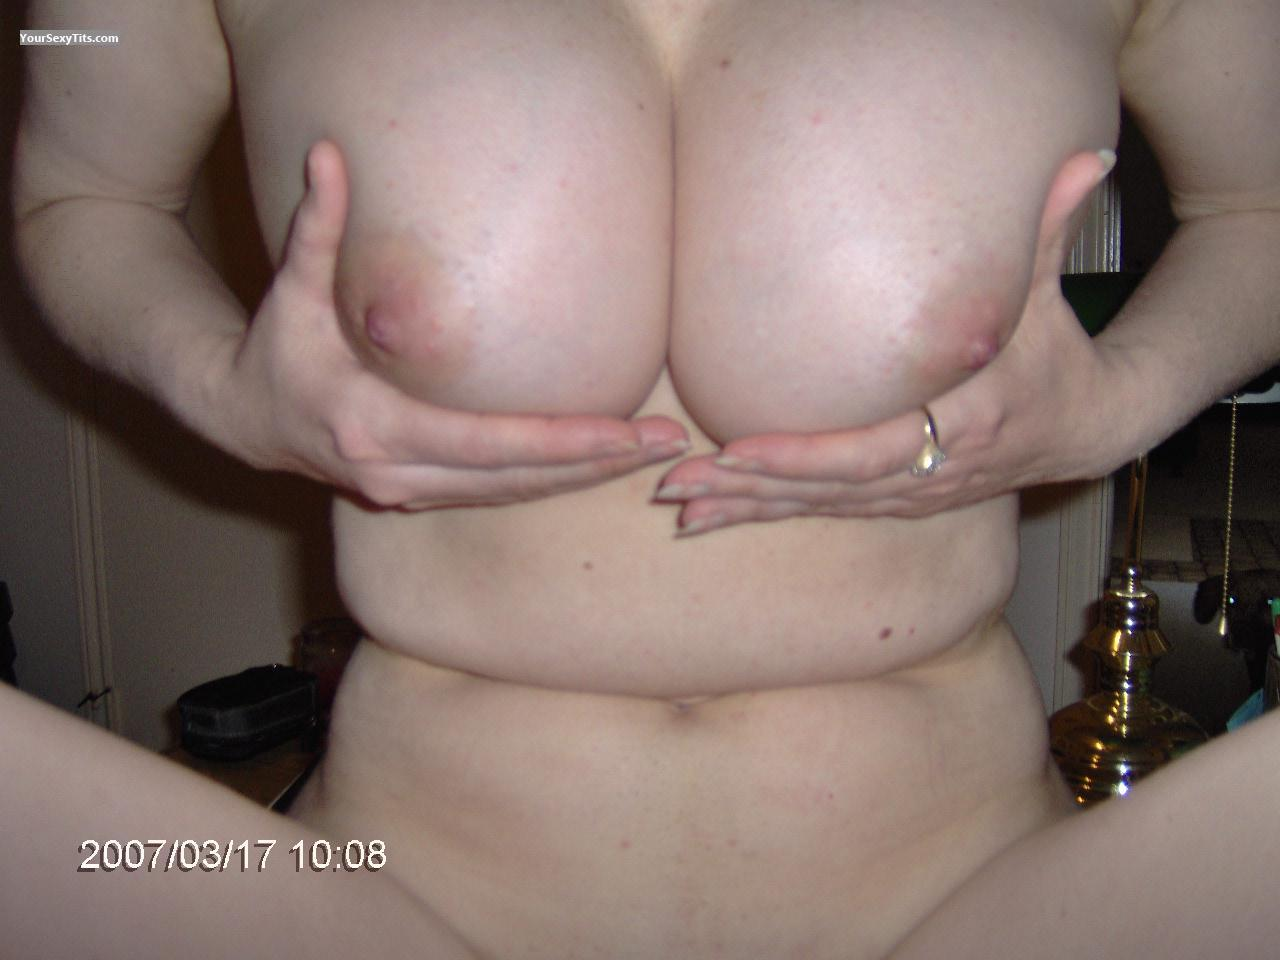 Big Tits Of My Girlfriend Gorgeous Girls